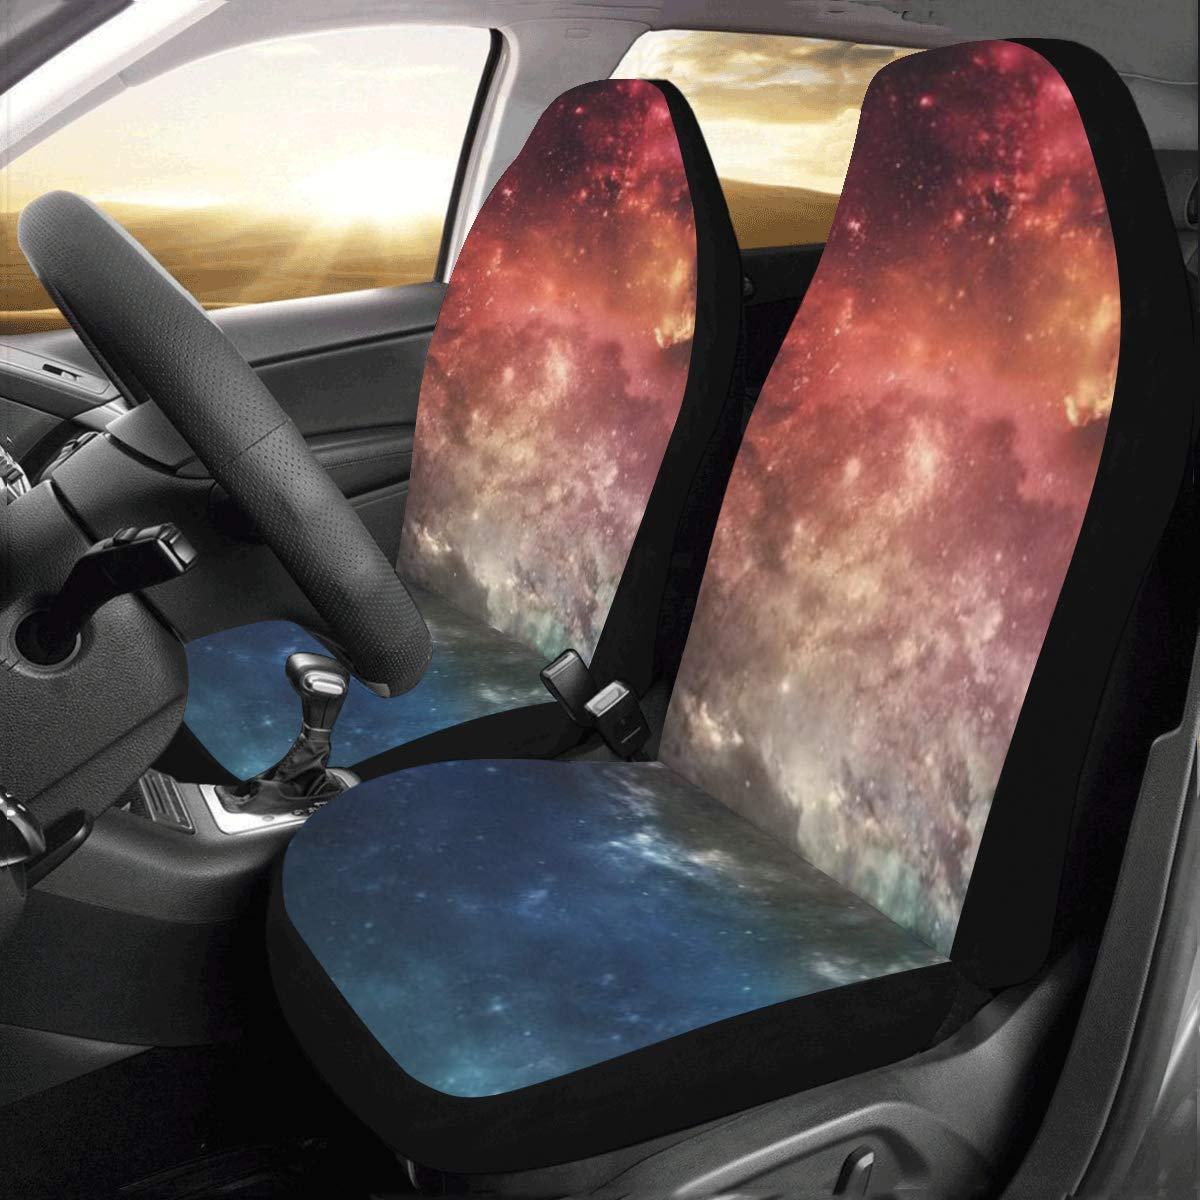 InterestPrint Universal Space Galaxy Two Front Car Seat Covers Set -100% Breathable